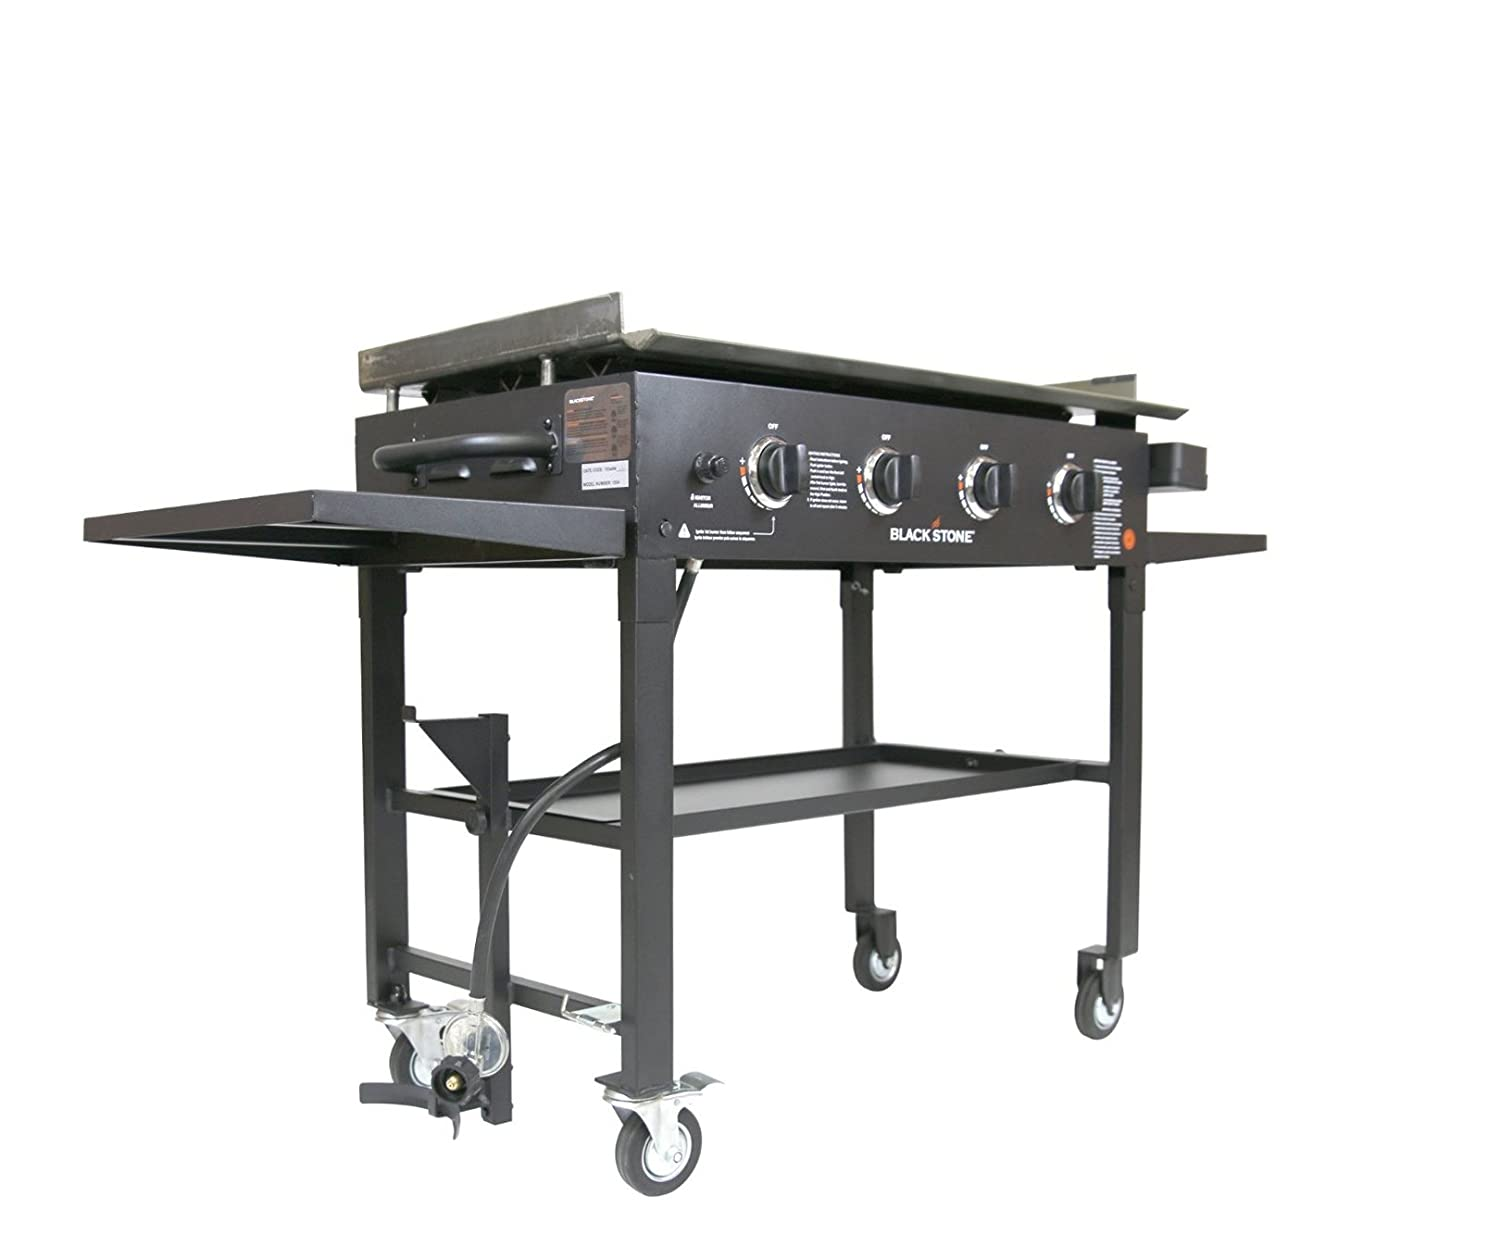 Outdoor Kitchen Gas Grill Outdoor Kitchen Gas Grill Griddle Outdoor Cooking Propane